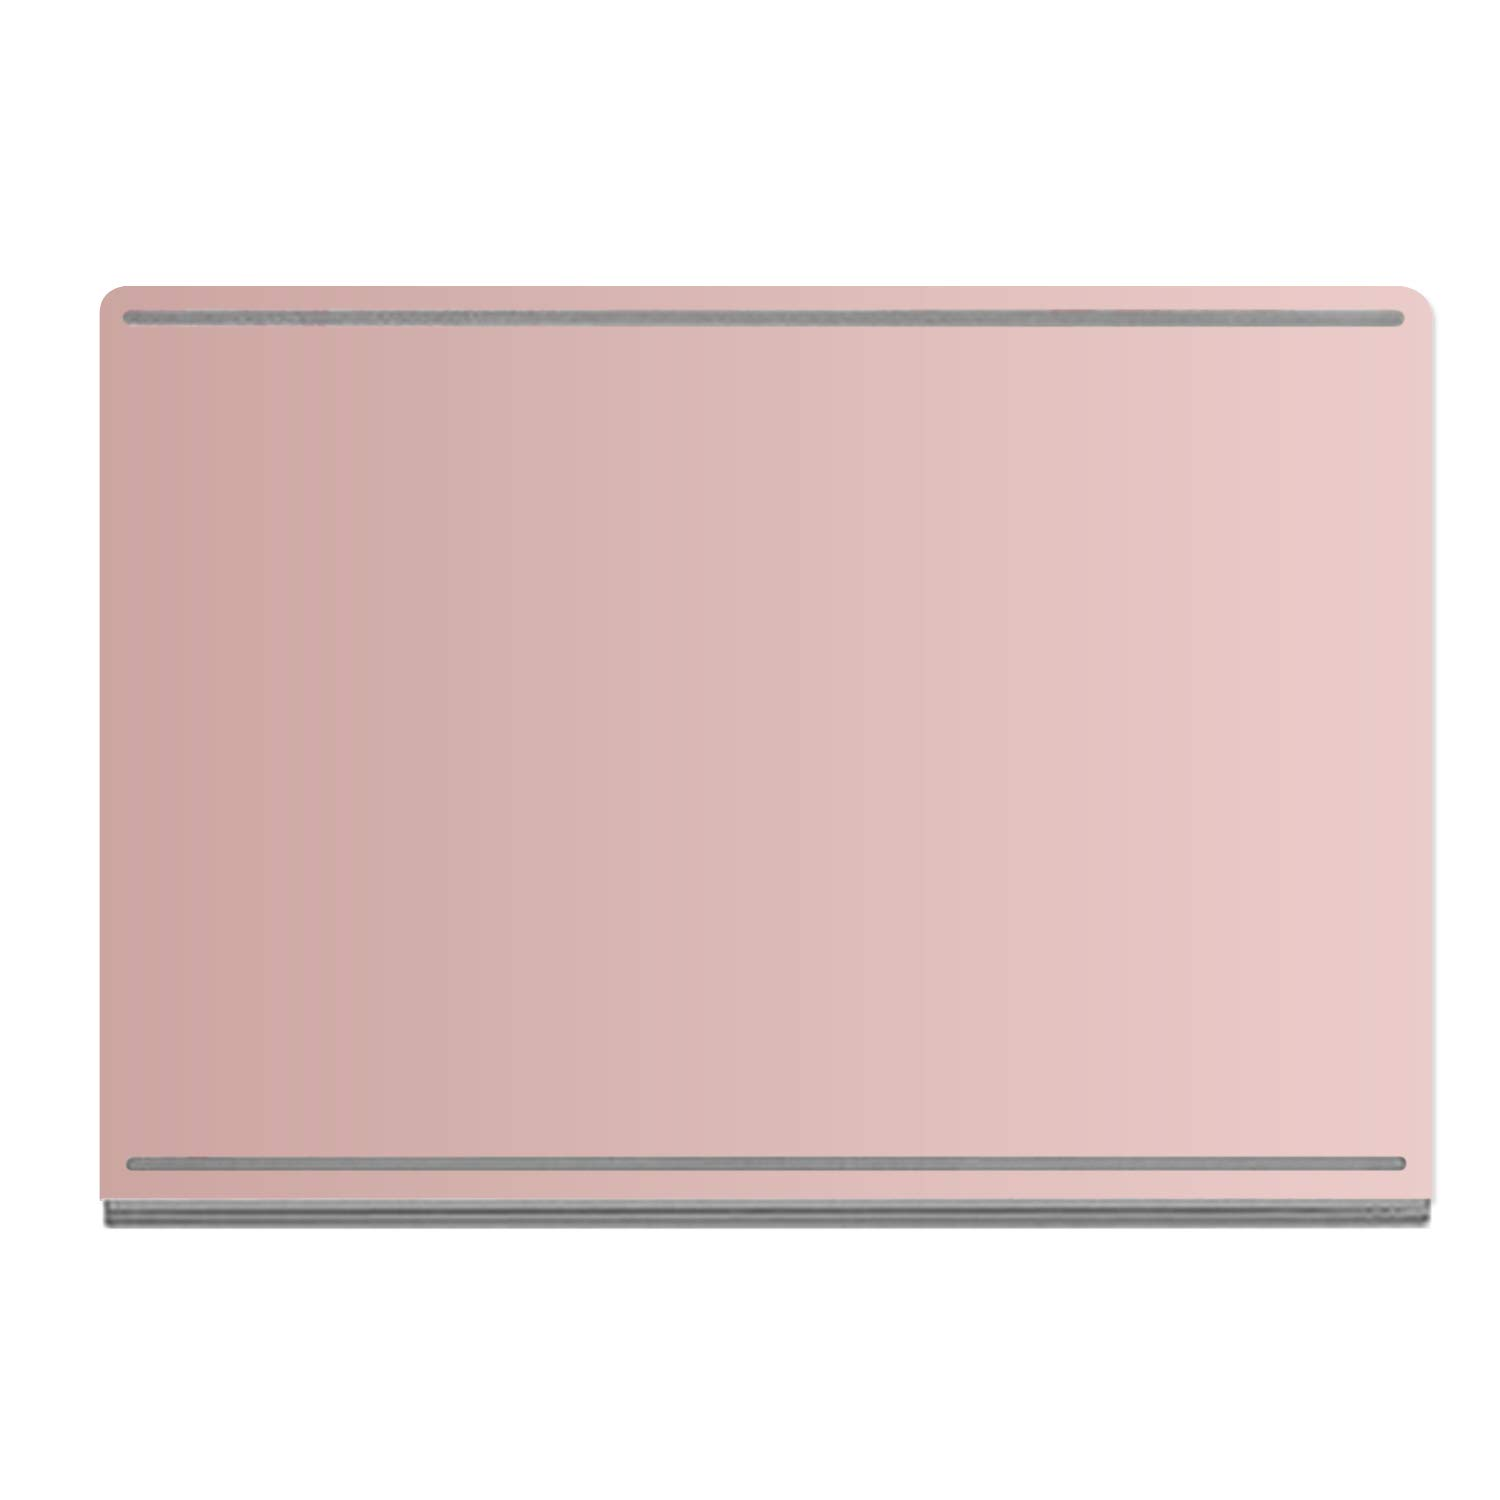 Masino Full Body Protector Decal Skin Laptop Cover Sticker for 13'' 13.5 inch Microsoft Surface Book 2 Core i5 Standard Configuration Version (2017 Released) (for 13.5'' Book 2, Decal- Rose Gold) by Masino (Image #4)